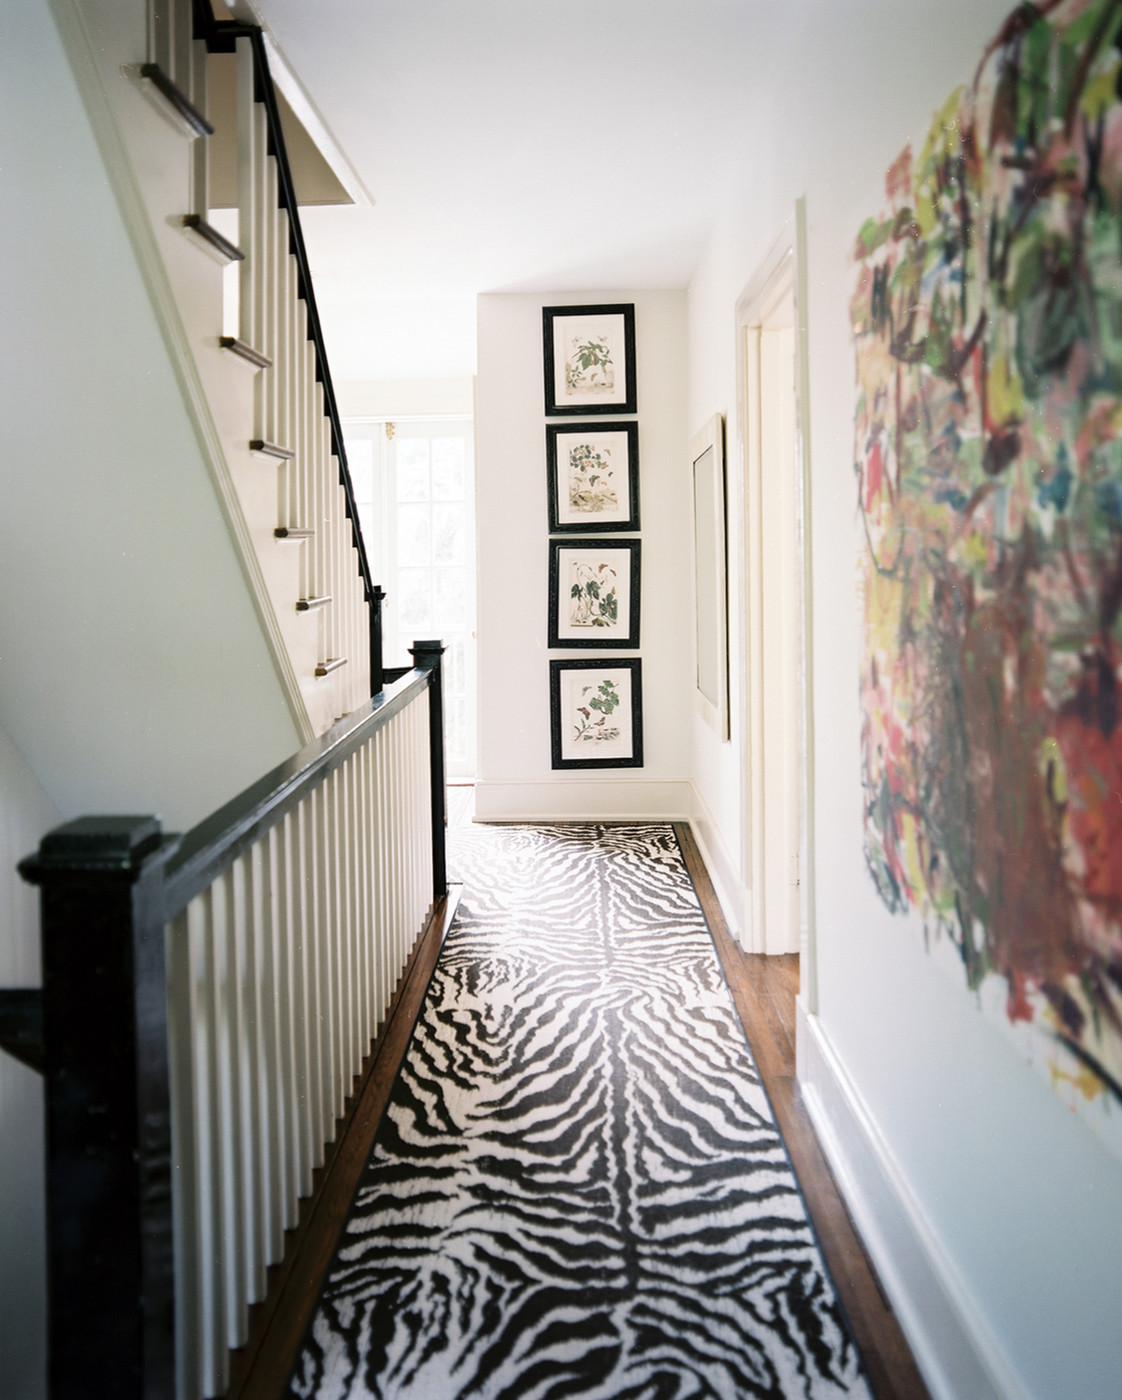 Hallway Rugs Photos Design Ideas Remodel And Decor Lonny